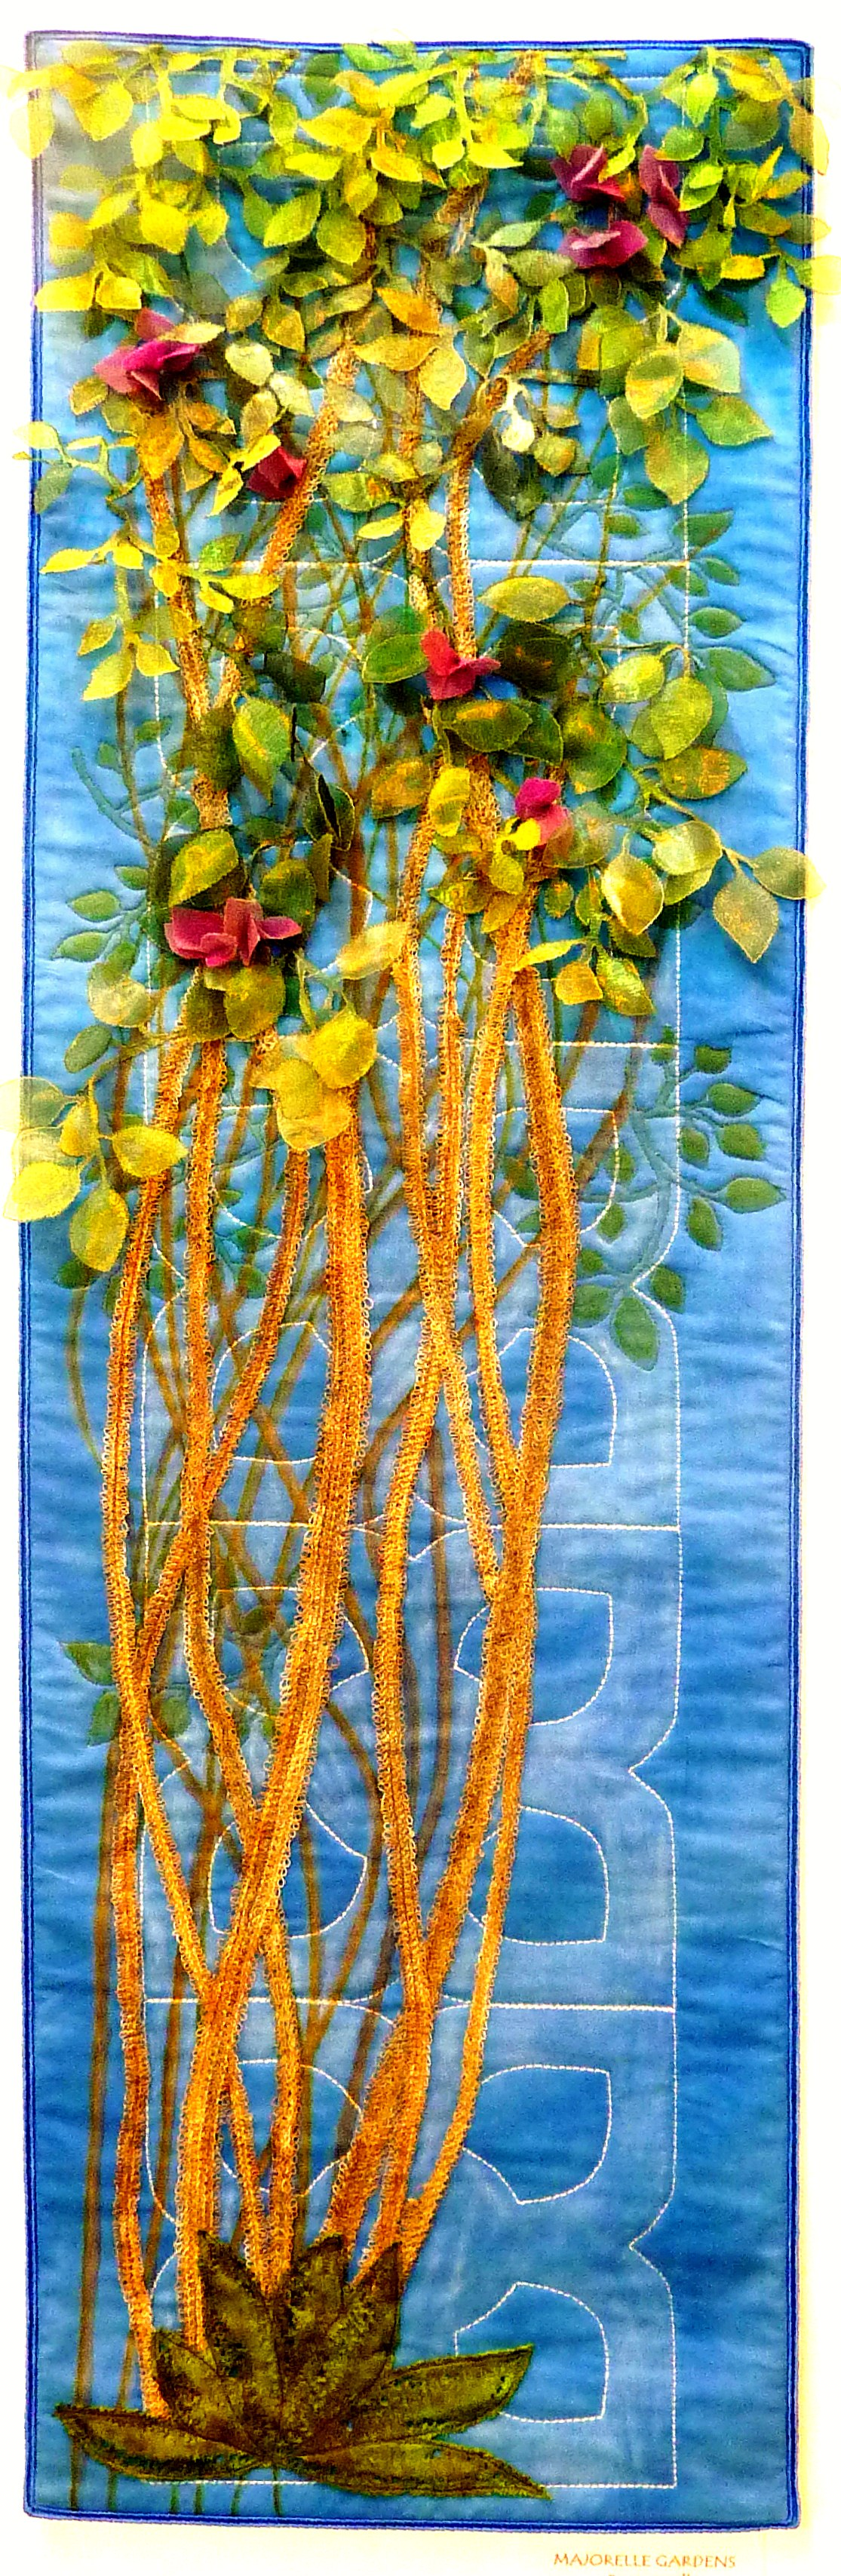 MAJORELLE GARDENS(Bougainvillea) by Pauline Barnes from Tangent Textiles